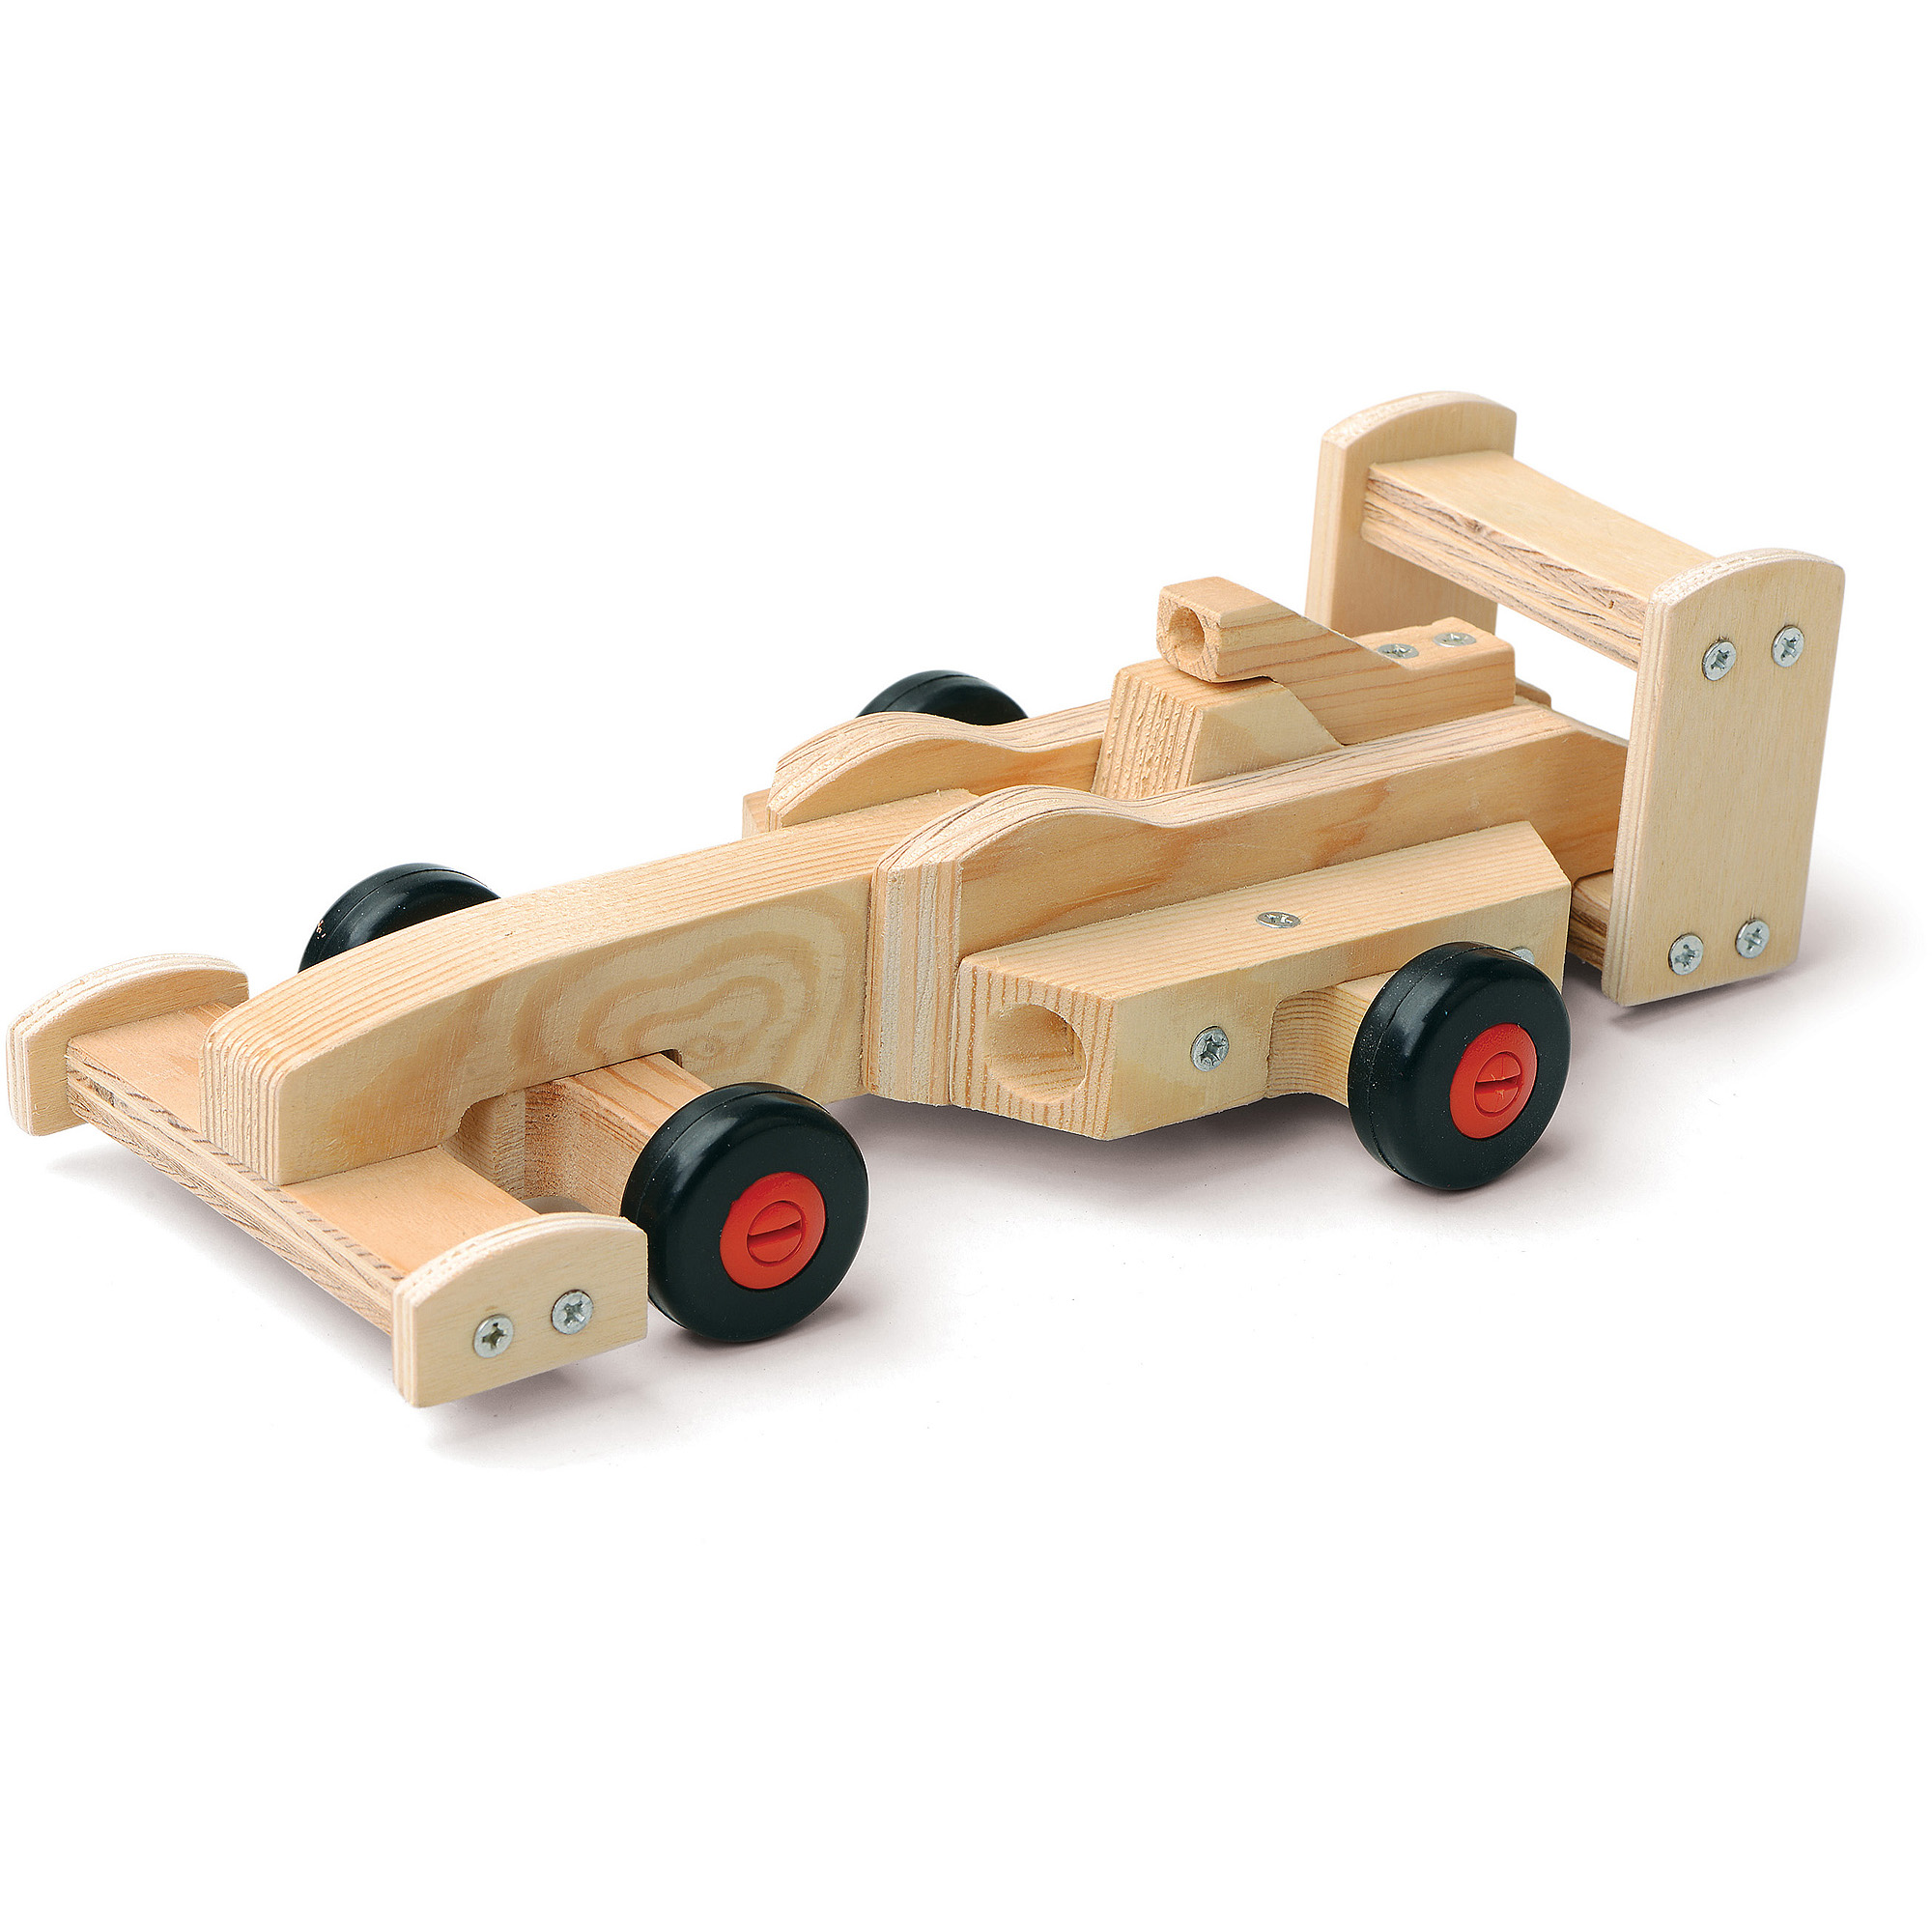 diy wood craft diy louis plane model wooden assemble kit toy gift